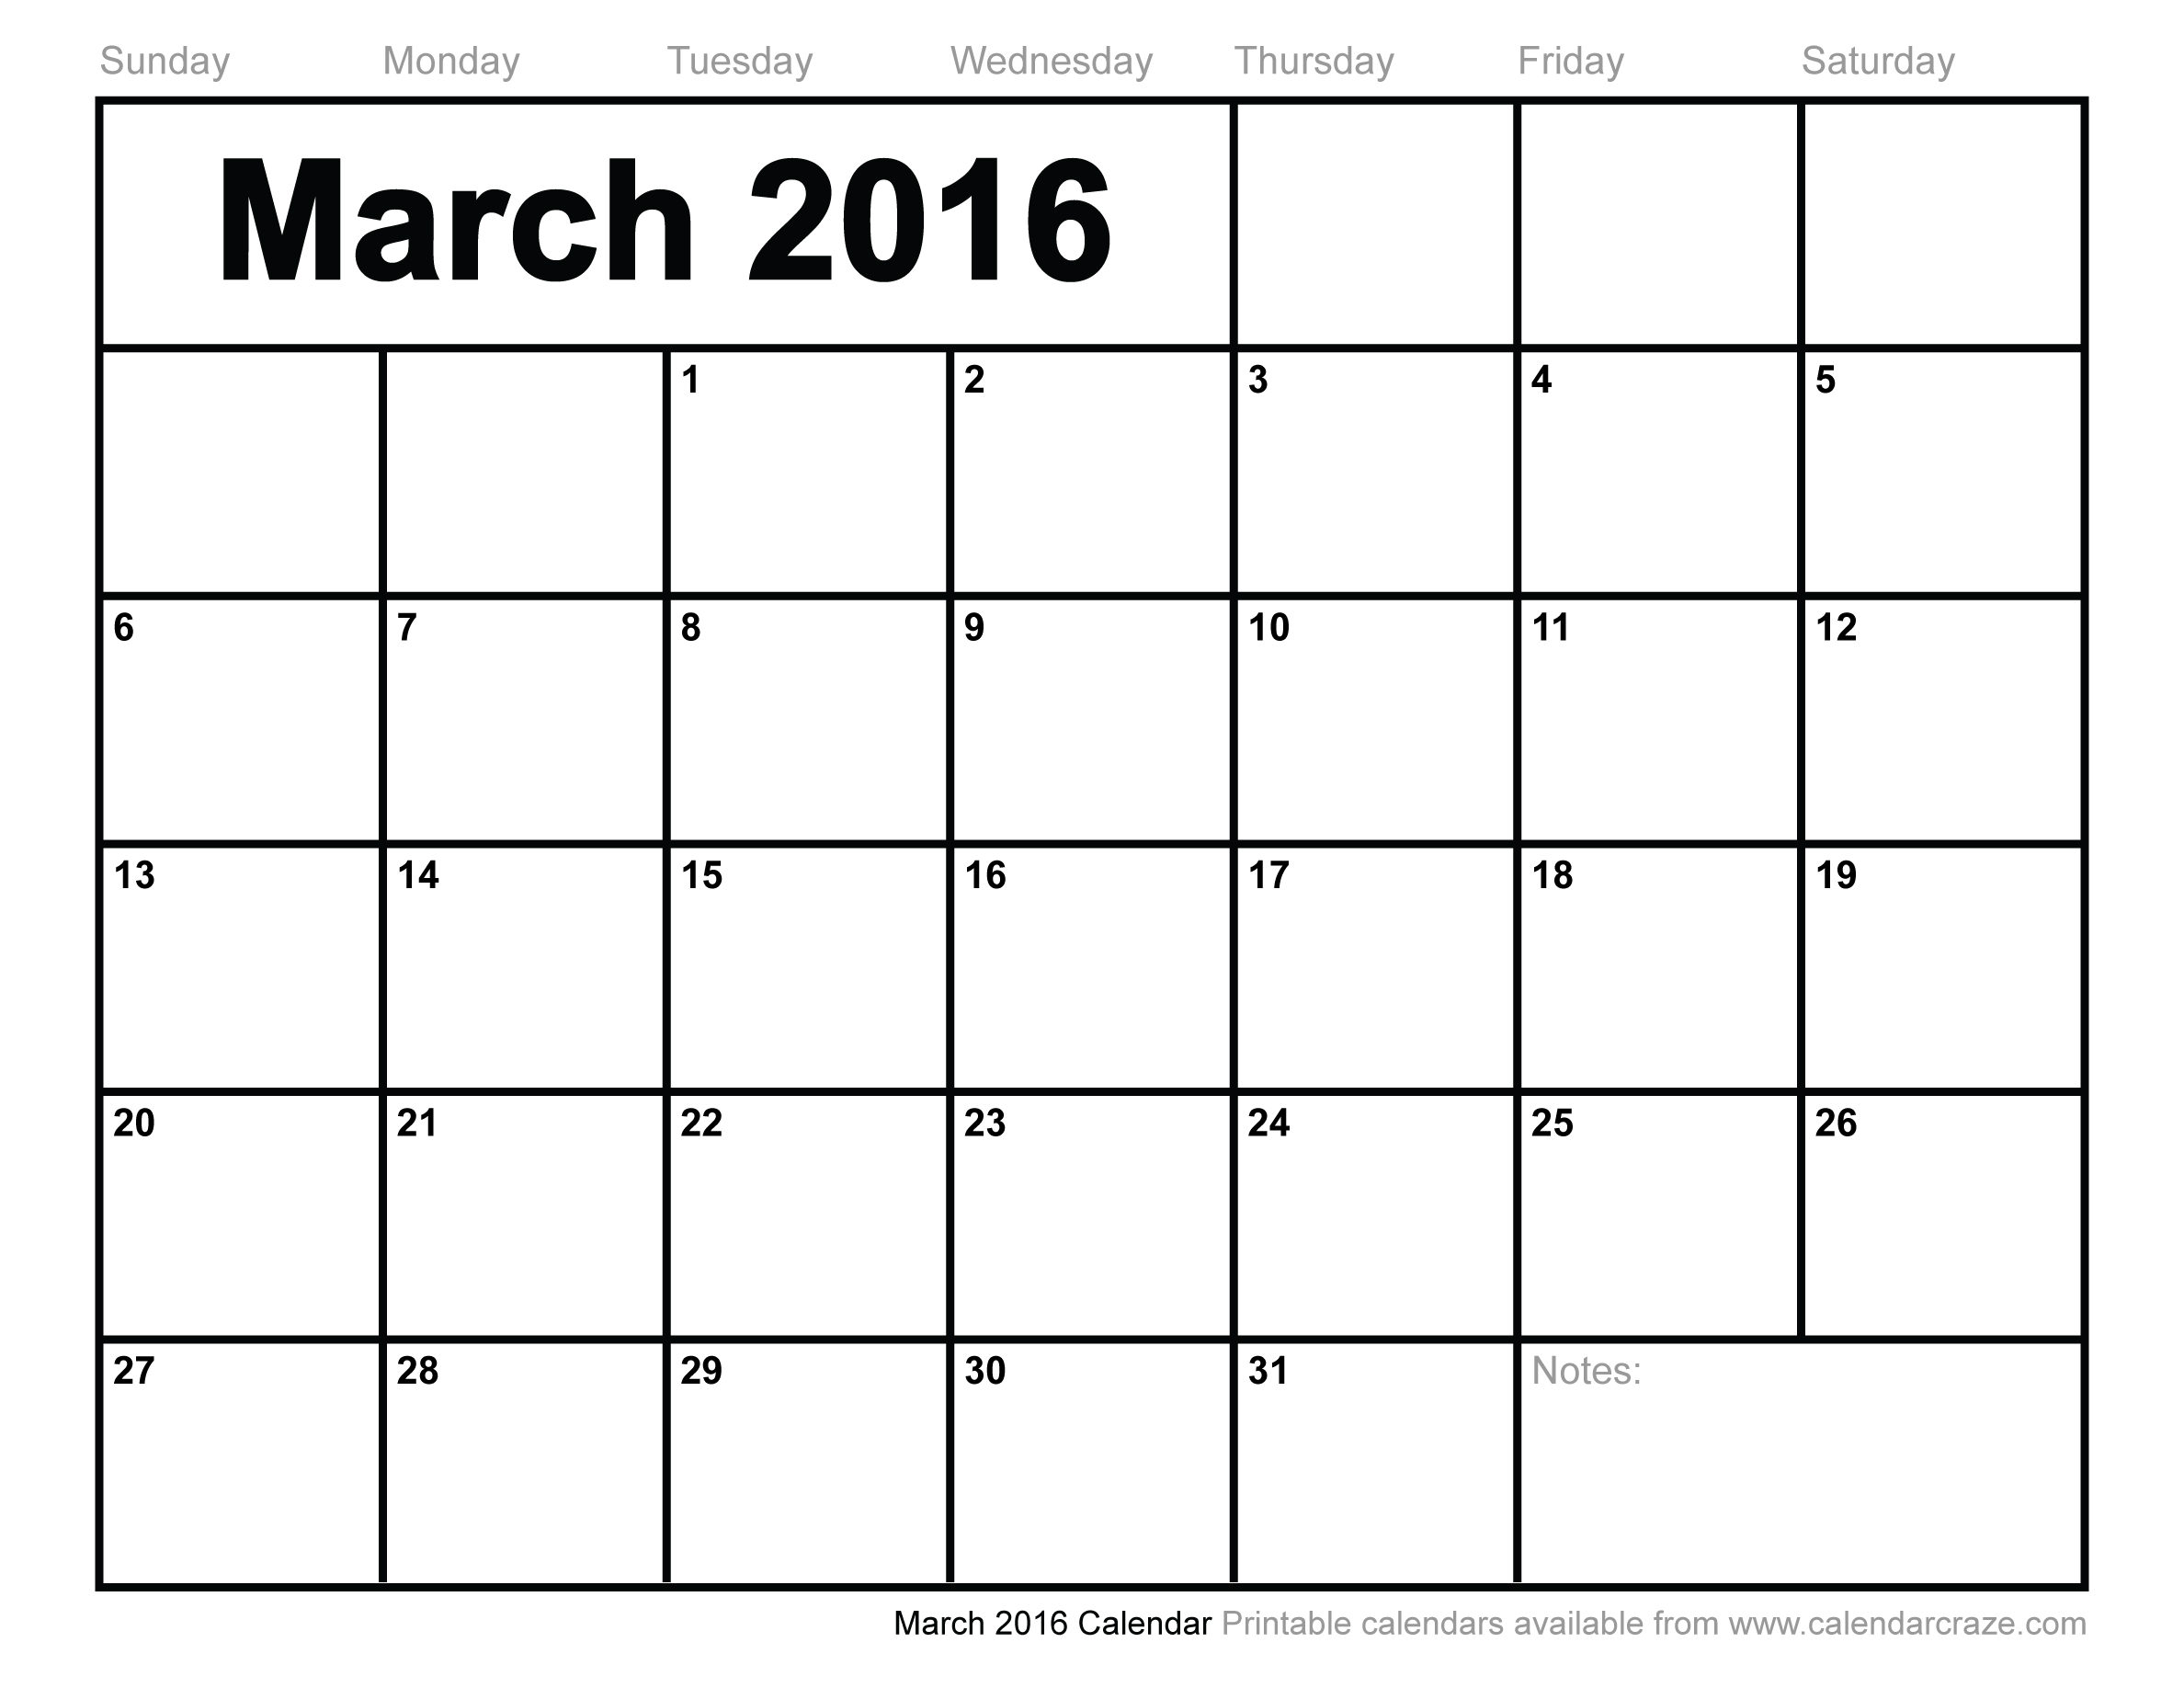 5 Images of 2016 Calendar Printable March